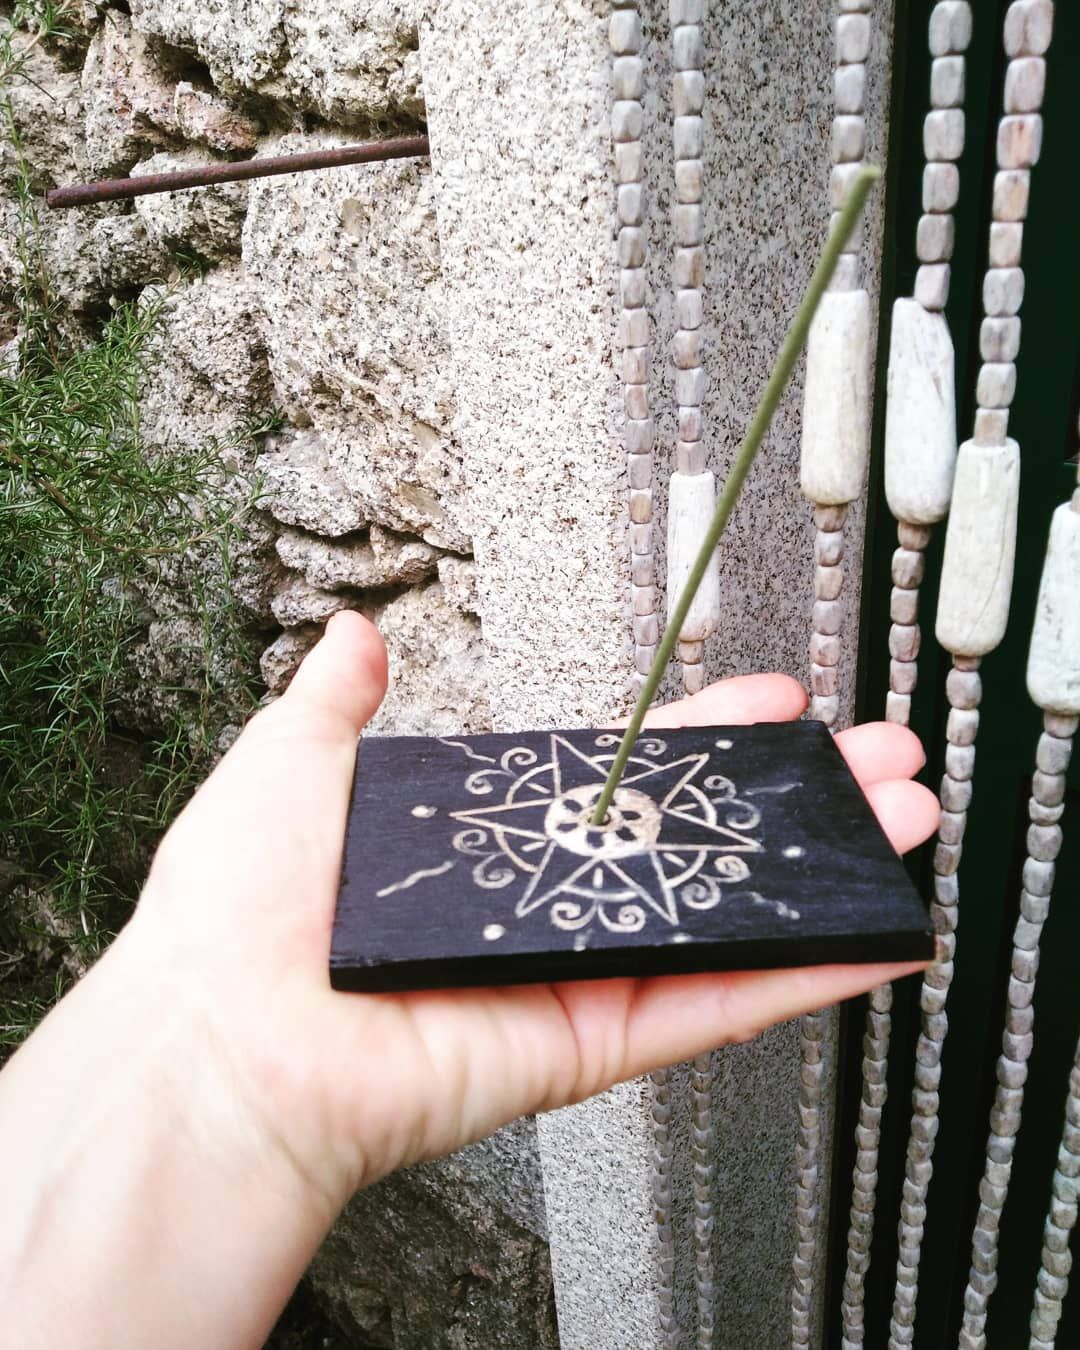 I've been experimenting new ideas and techniques and I made this incense burner out of a piece of wood. It's painted and carved. It's not an example of perfection but it opens my mind for new possibilities. . . #madeinportugal #handmade #handmadecrafts #handpainted #art #amor #artoninstagram #mandala #mandalapassion #mandalalovers #mandalalove #mandalaart #acrylic